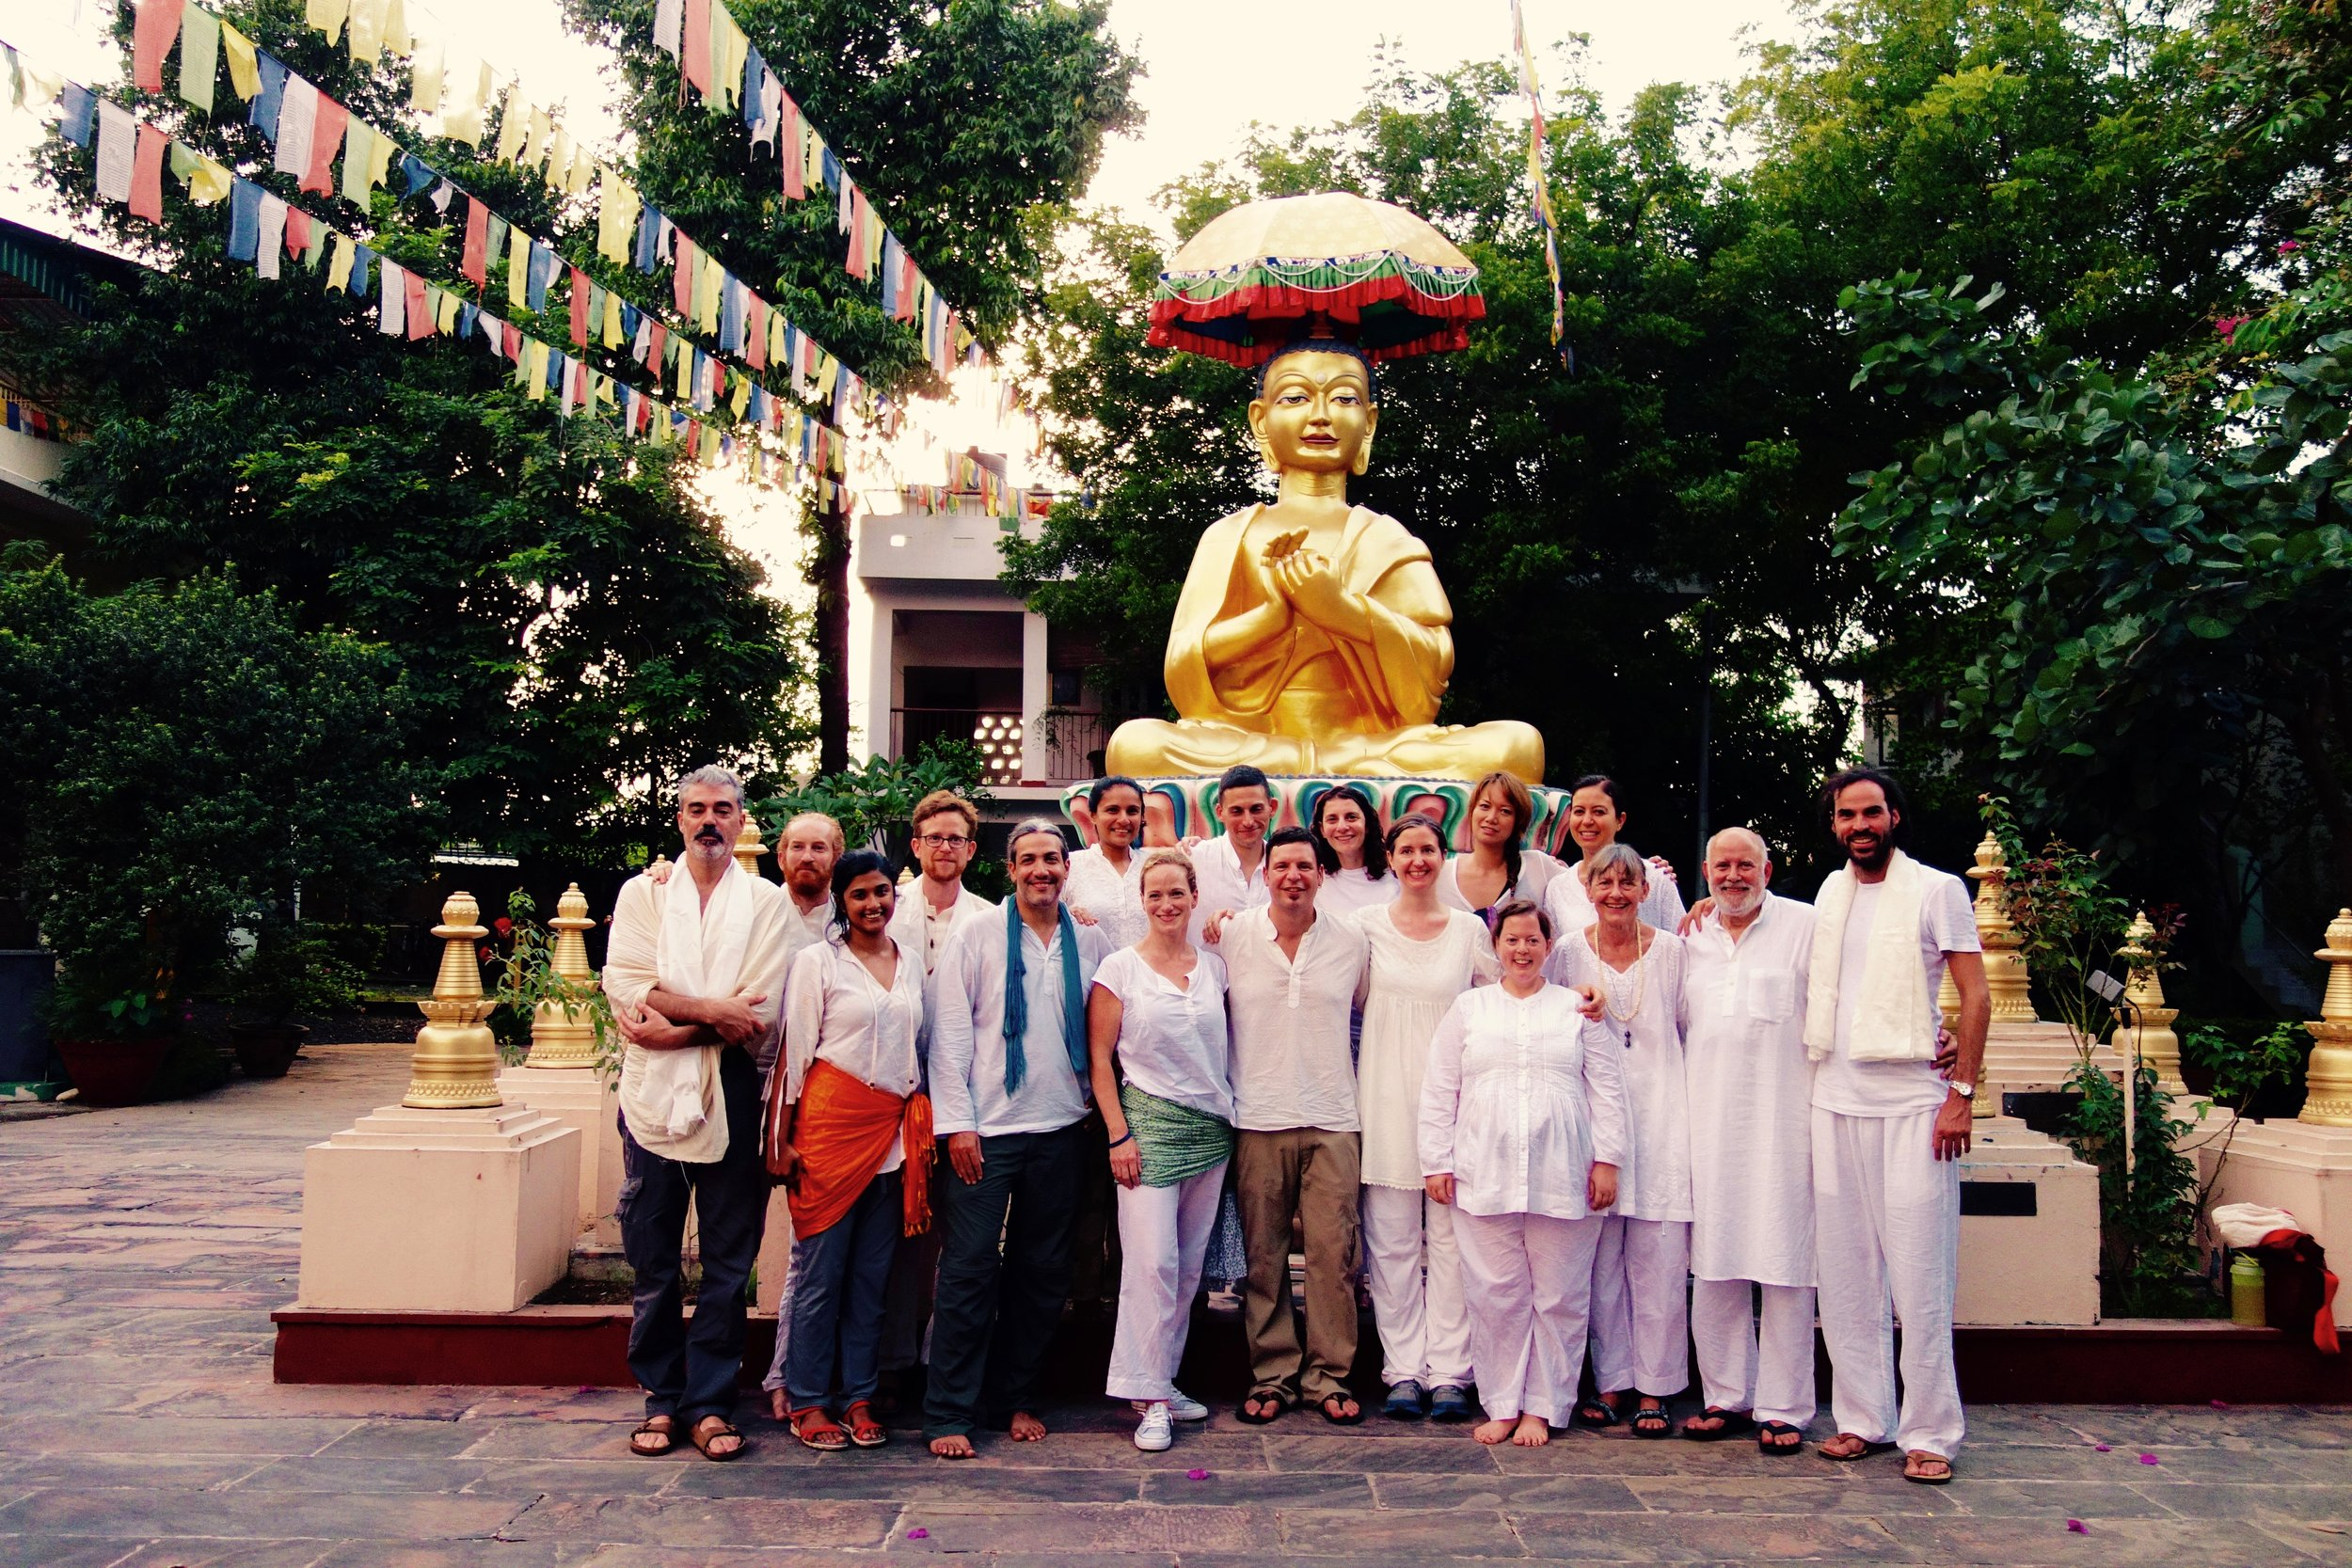 Footsteps of the Buddha… - During our inaugural group pilgrimage to India we visited the power places associated with the Buddha's life and teaching.